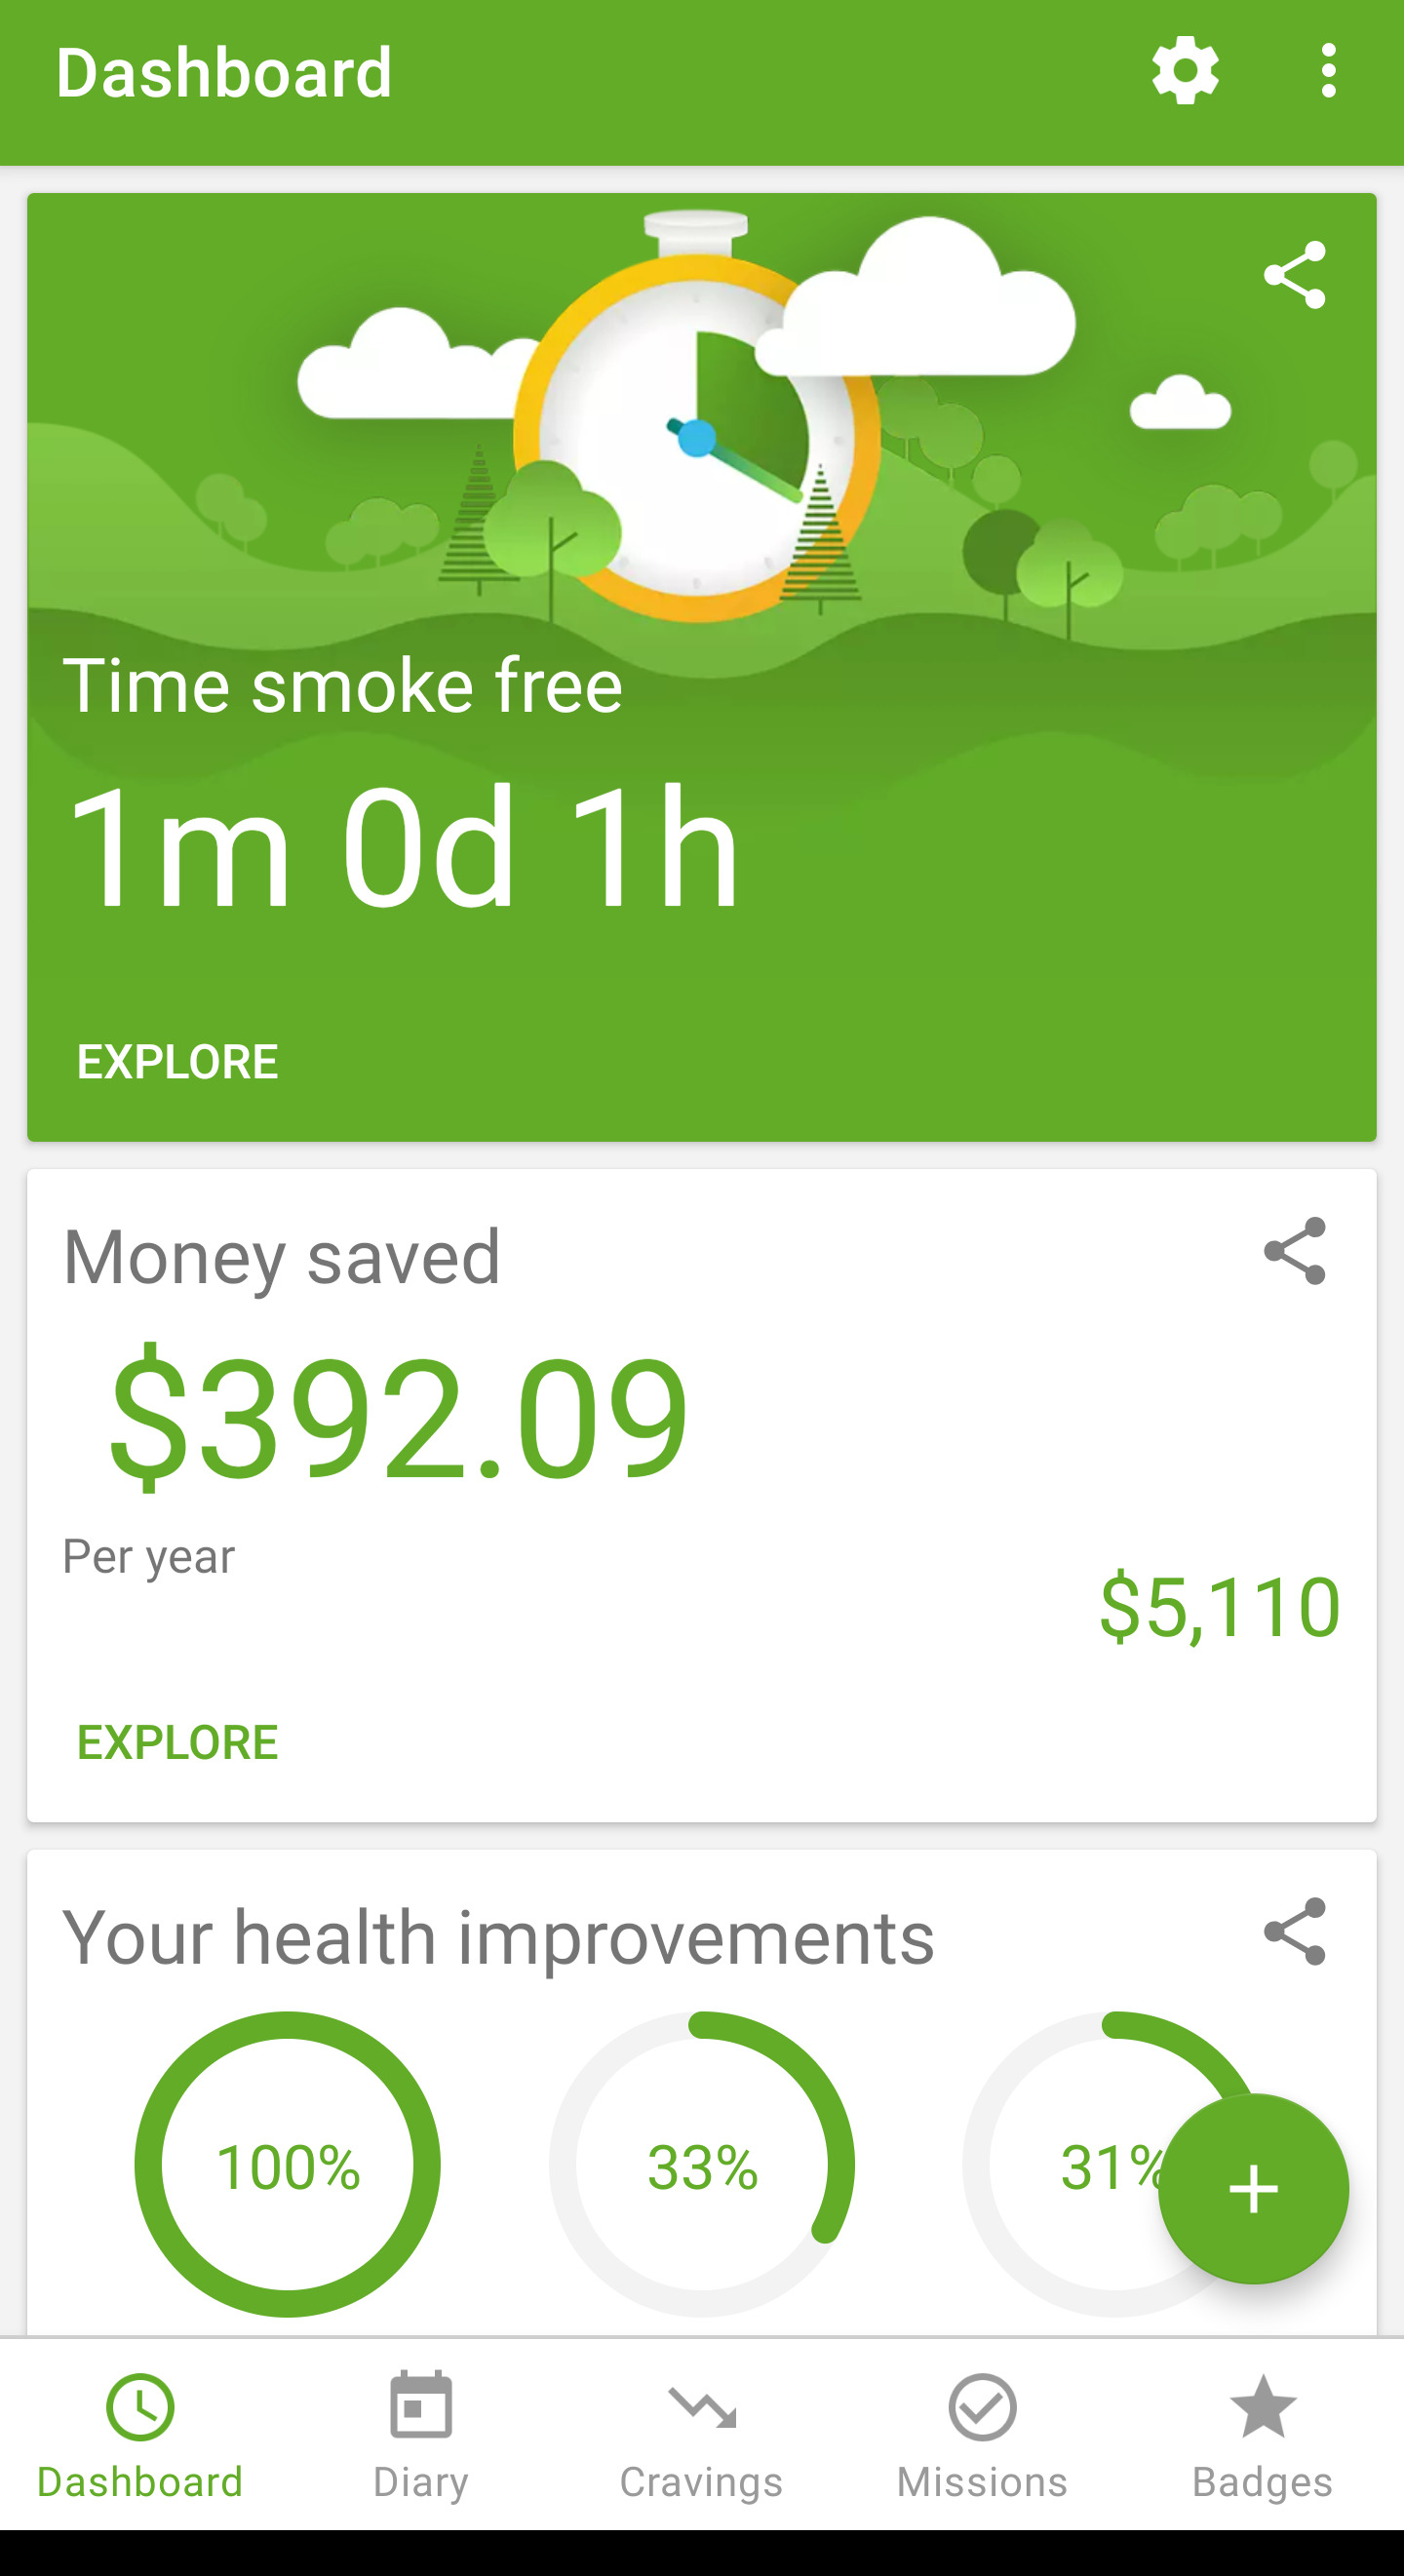 [Image] UPDATE #2: Made it 1 month completely smoke free. I don't think I would have ever made it past the first 7 without all the support I received here. I will be forever grateful to all you random wonderful people.